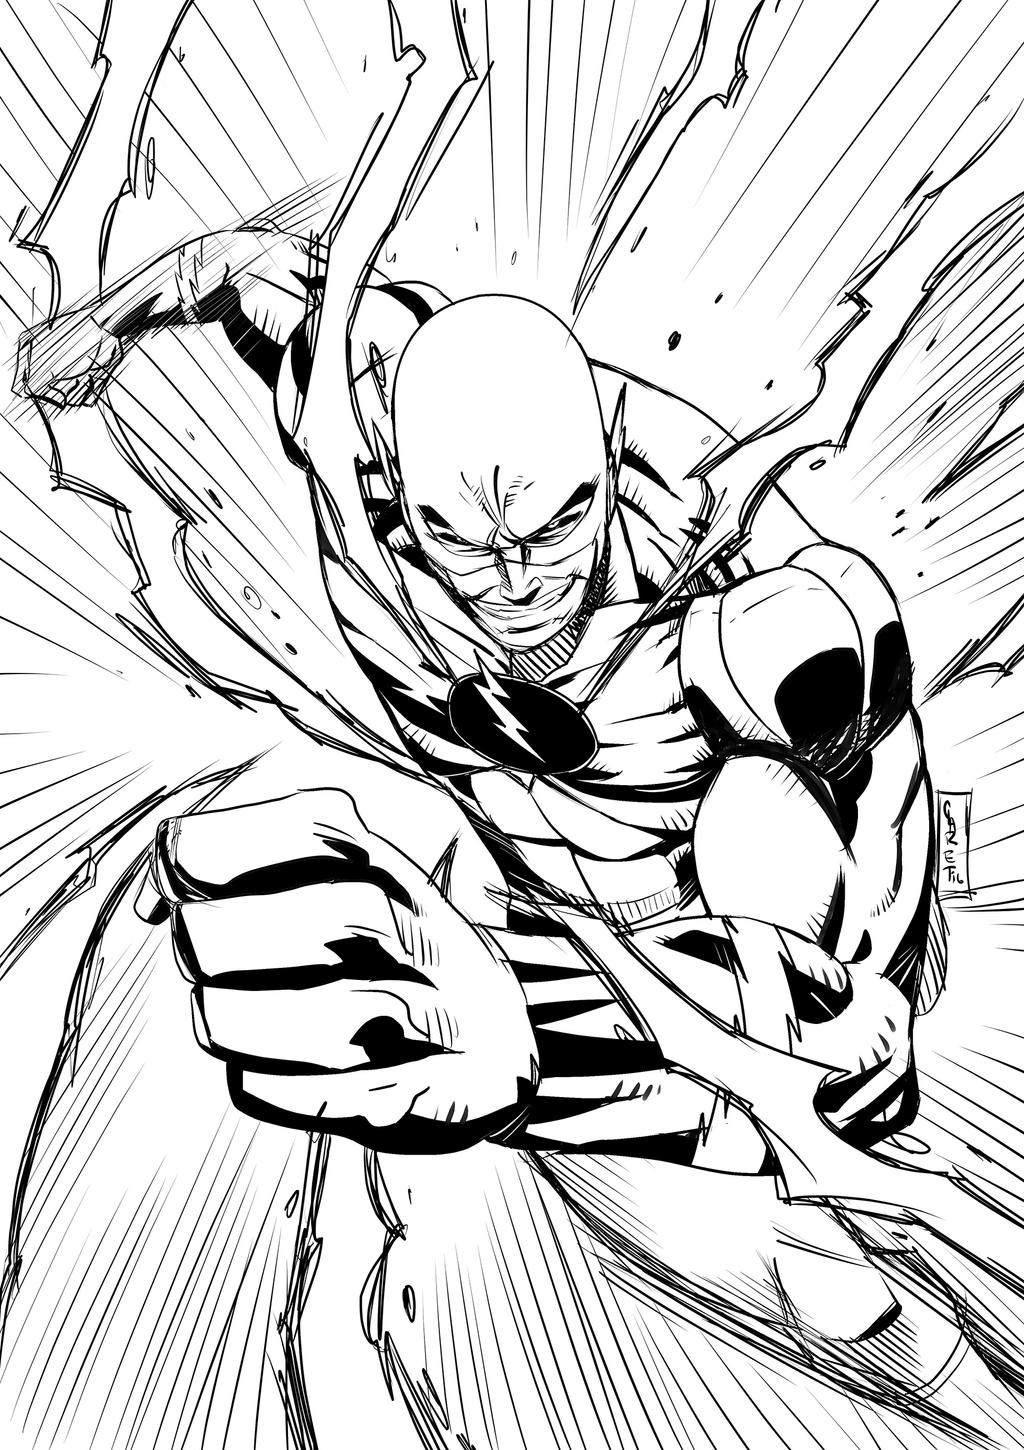 Drawing Smooth Lines In Flash : Reverse flash by claret on deviantart